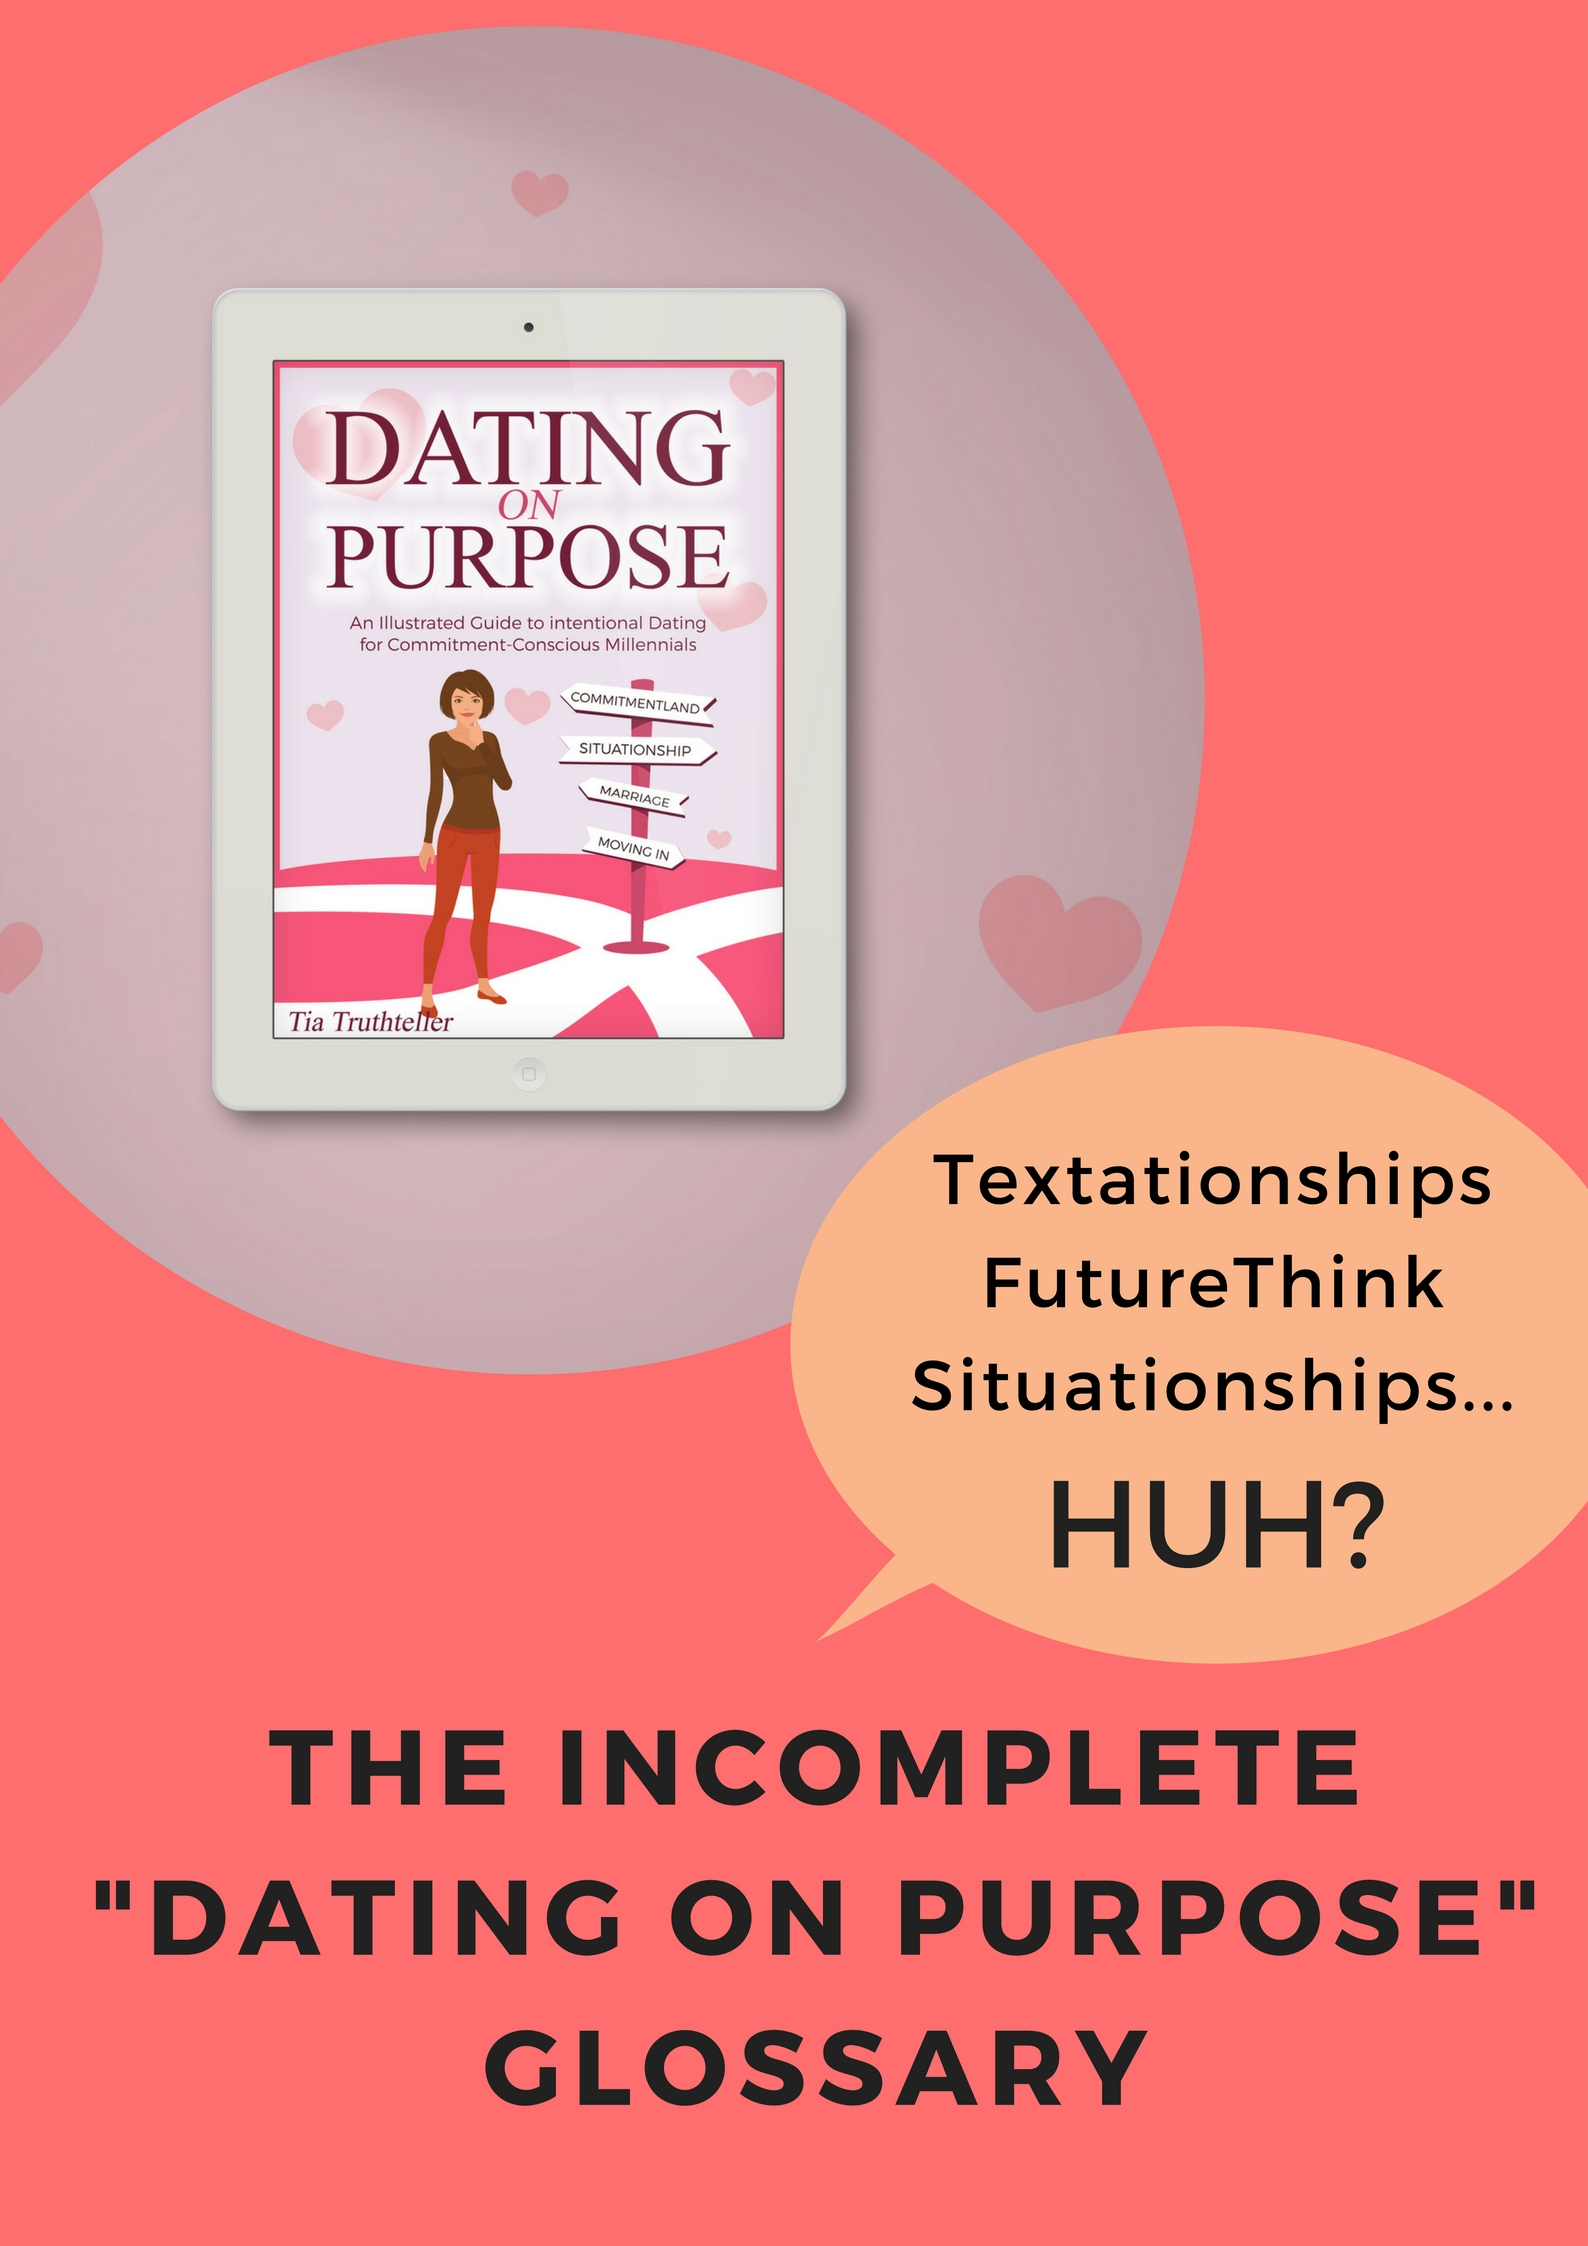 Glossary of quirky terms used in the Dating on Purpose Book